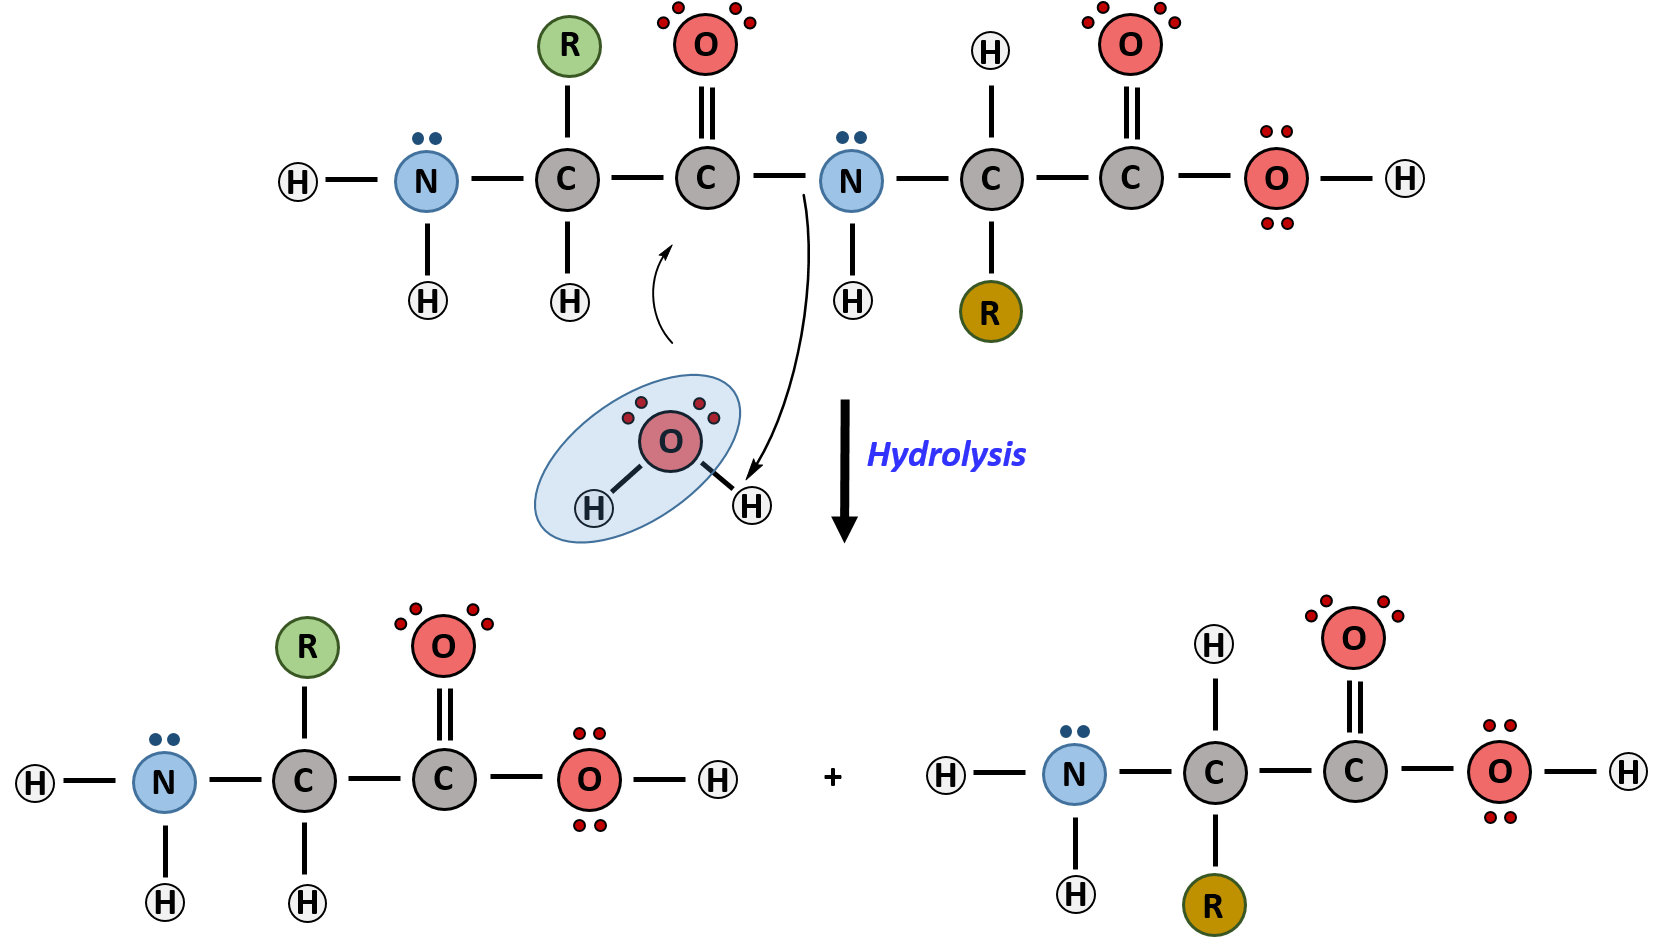 Ch103 Chapter 8 The Major Macromolecules Chemistry